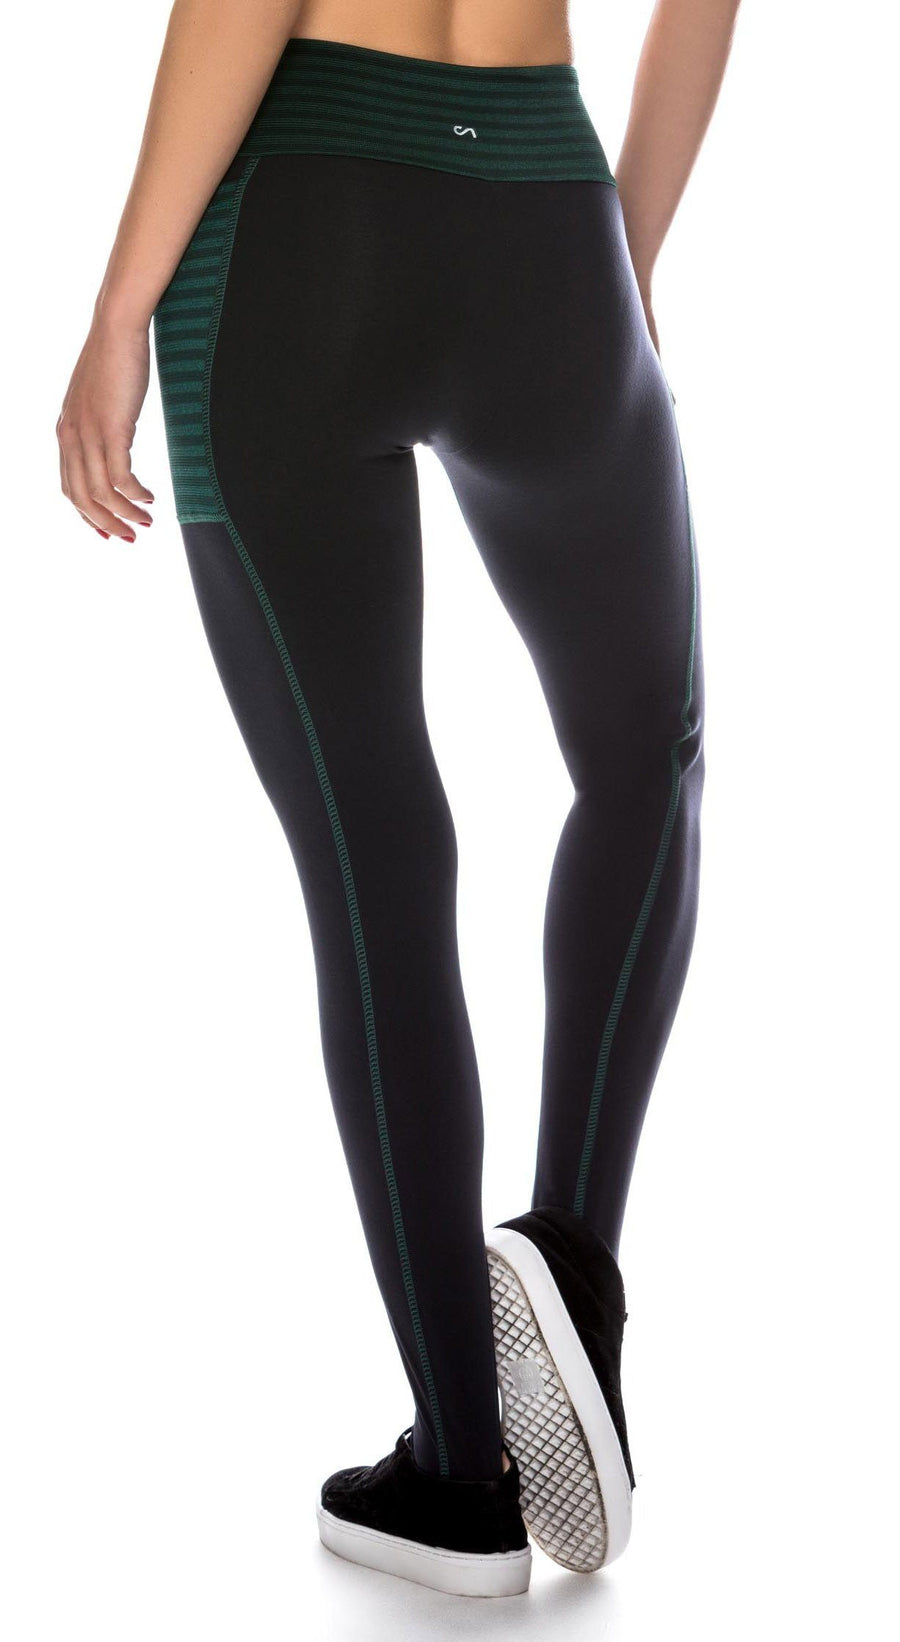 Brazilian Gym Legging - Intense With Side Pockets